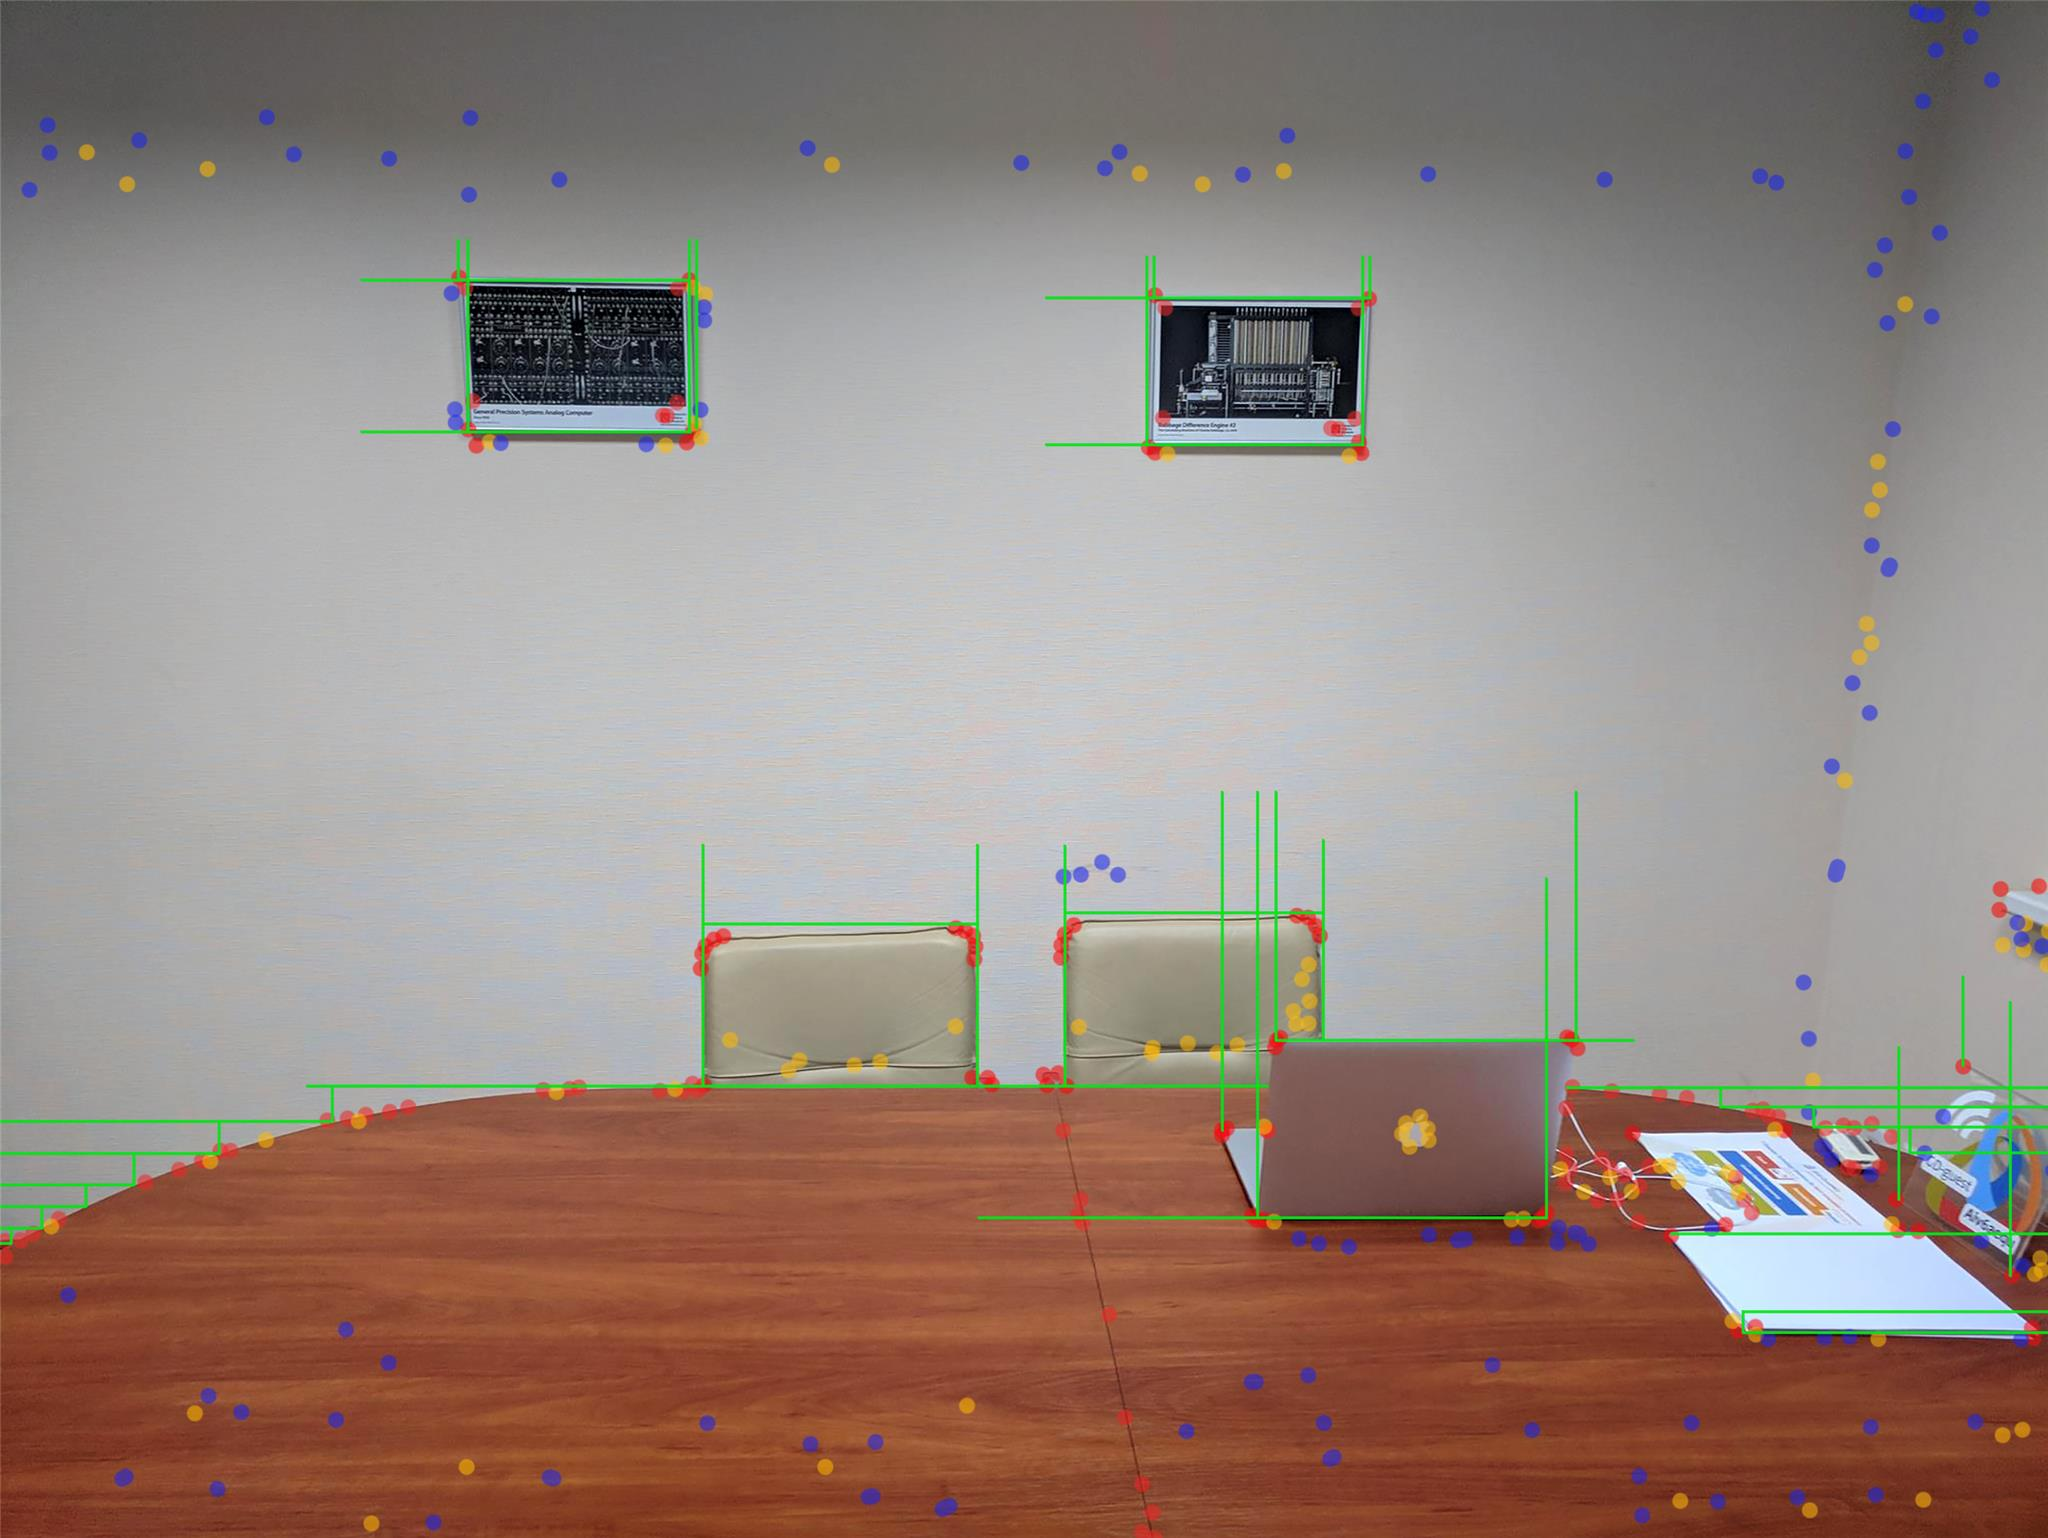 Example of ARCore using visual odeometry technology for a room